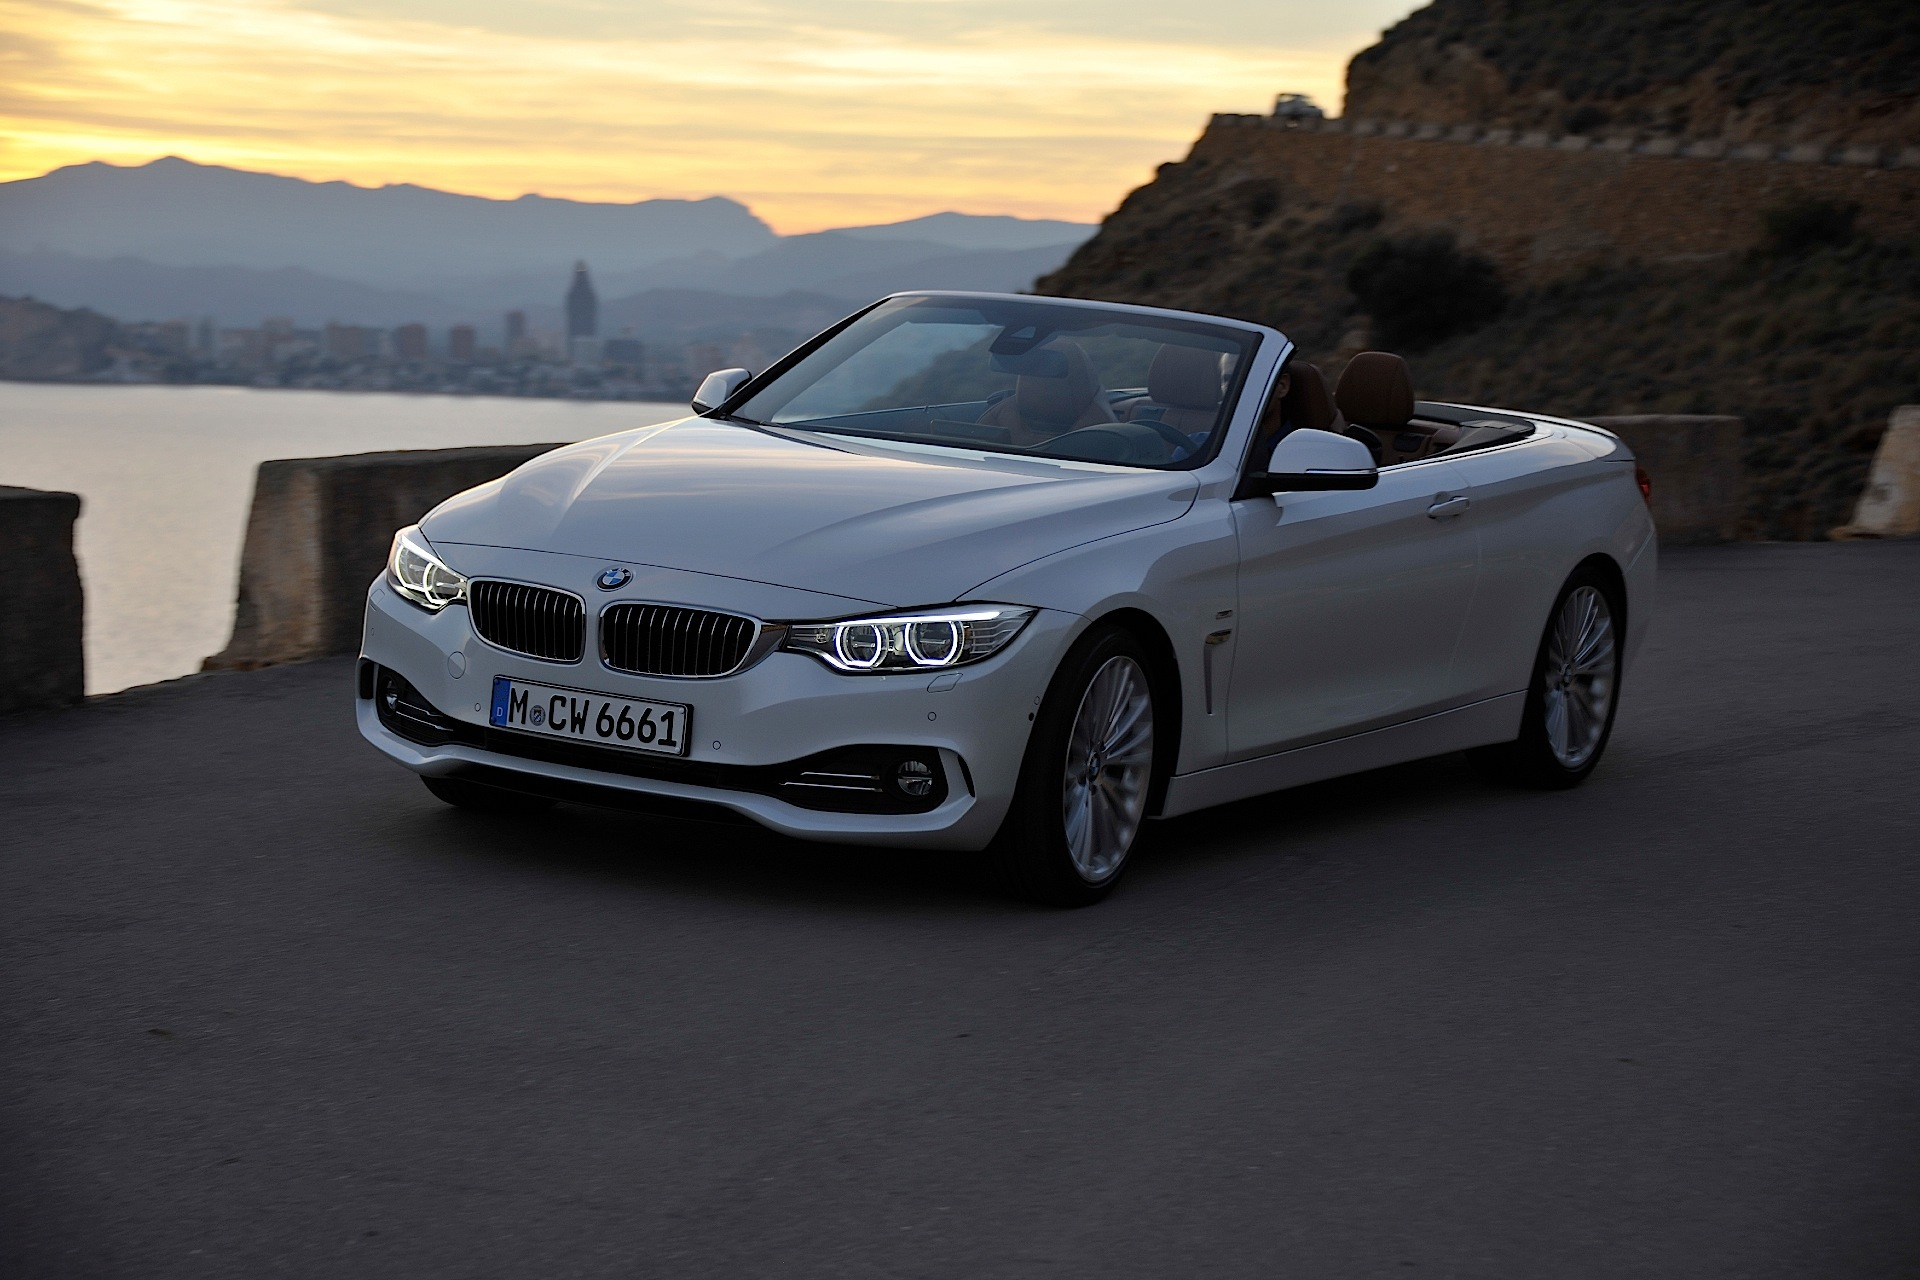 bmw 4 series cabrio specs 2014 2015 2016 2017 2018 autoevolution. Black Bedroom Furniture Sets. Home Design Ideas